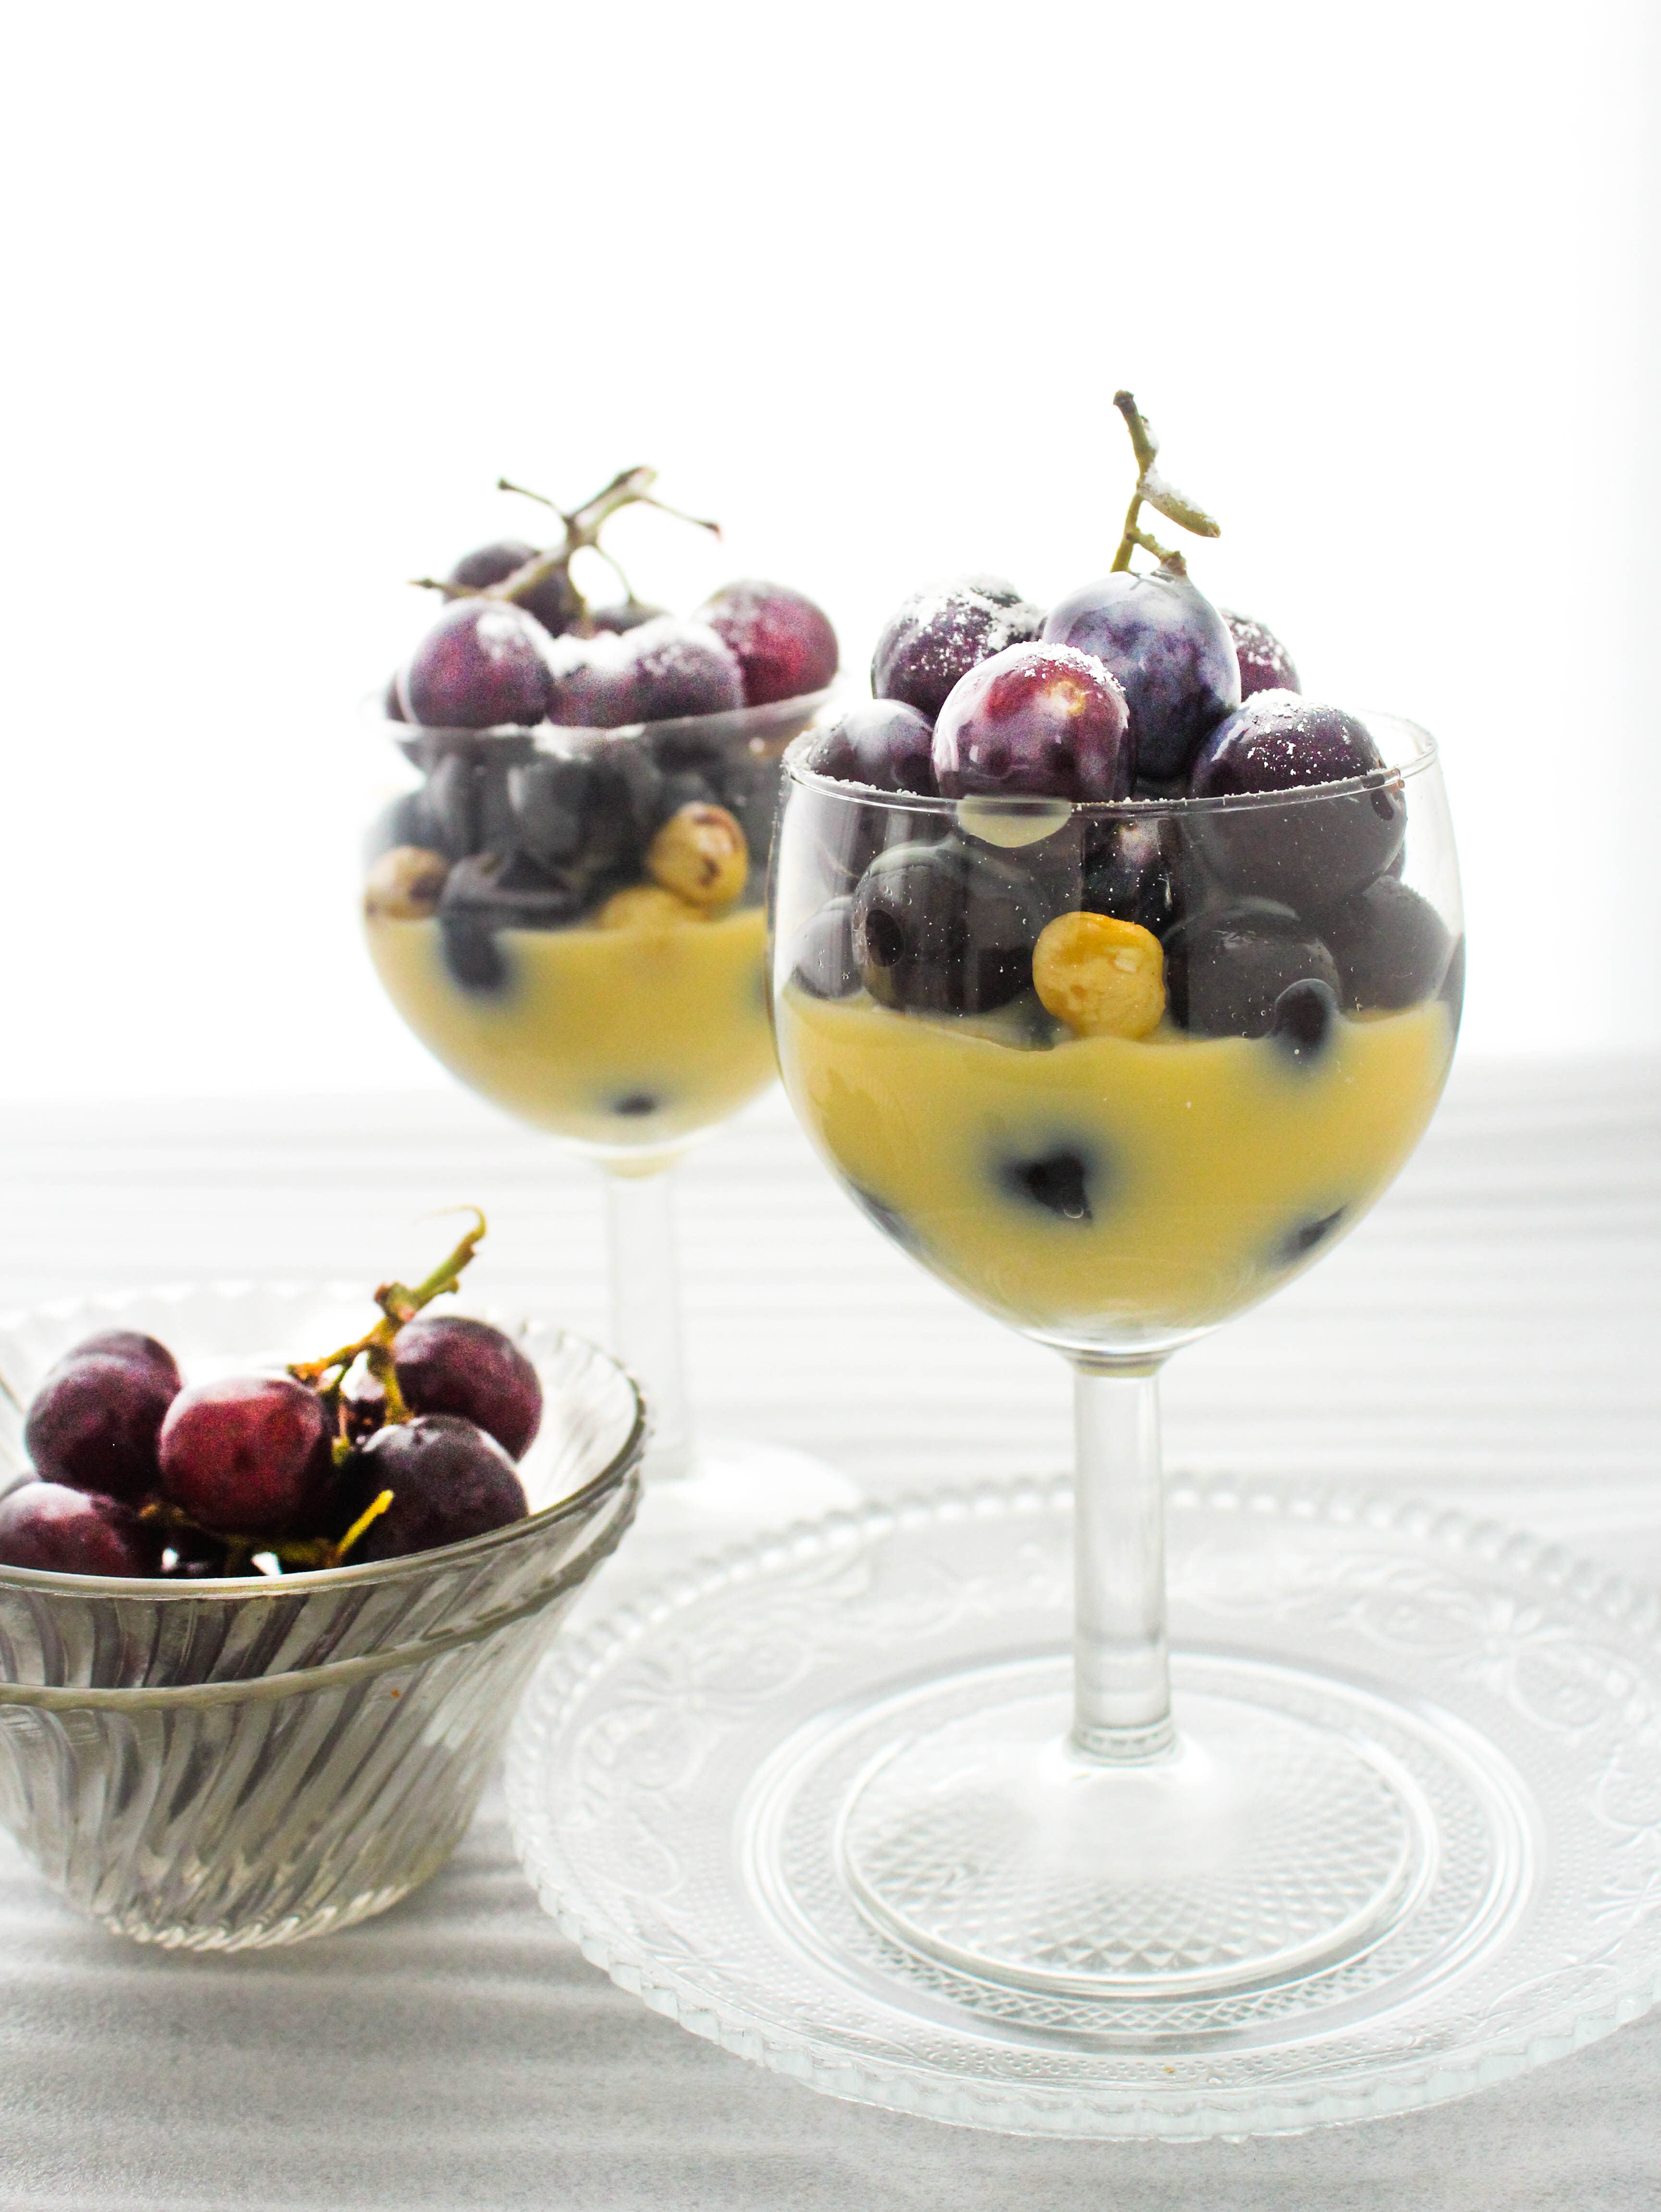 Grapes with Orange Creme Anglaise (Custard) and Hazelnuts